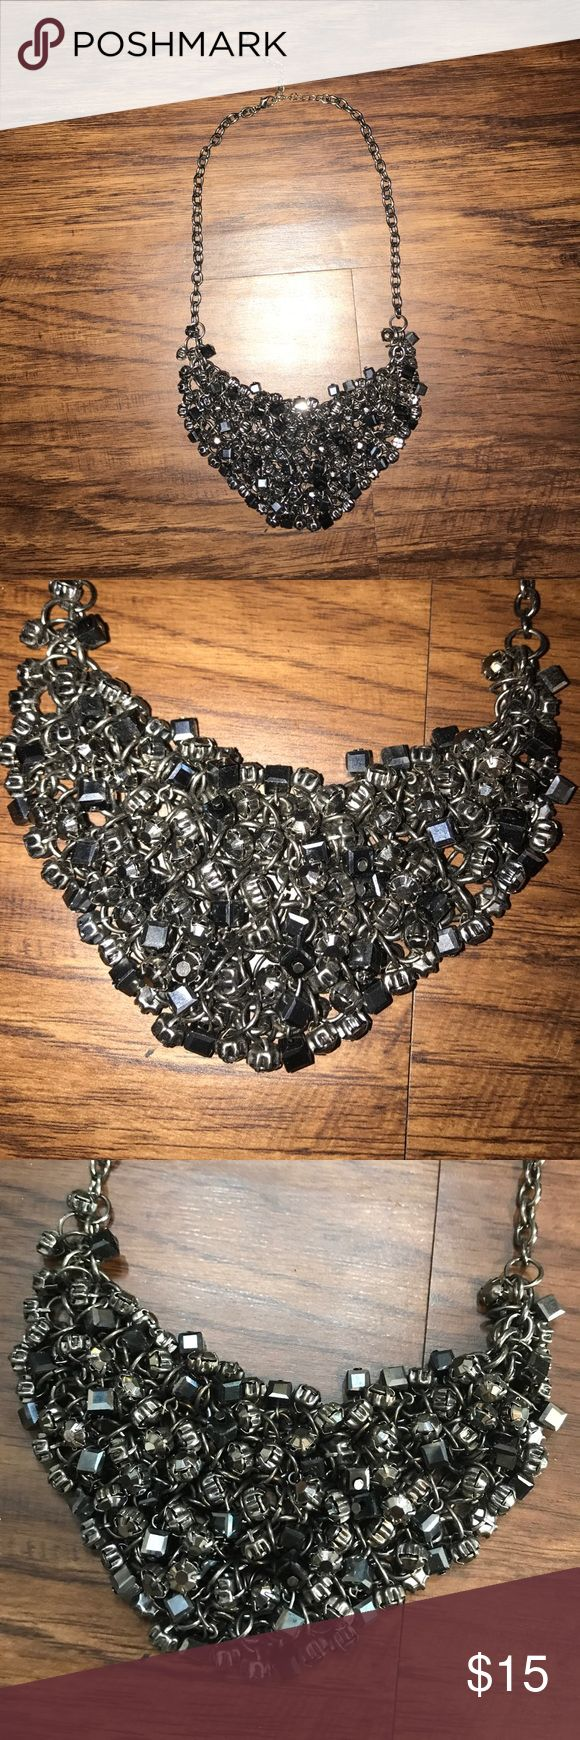 Dark Silver Beaded Bib Statement Necklace this necklace is beautiful and i got so many compliments every time i wore it! dark silver carbon color with different beads all attached in a bib like front piece. very very slight tarnishing on the chain but not visible at all. great condition! purchased from nordstrom. Nordstrom Jewelry Necklaces